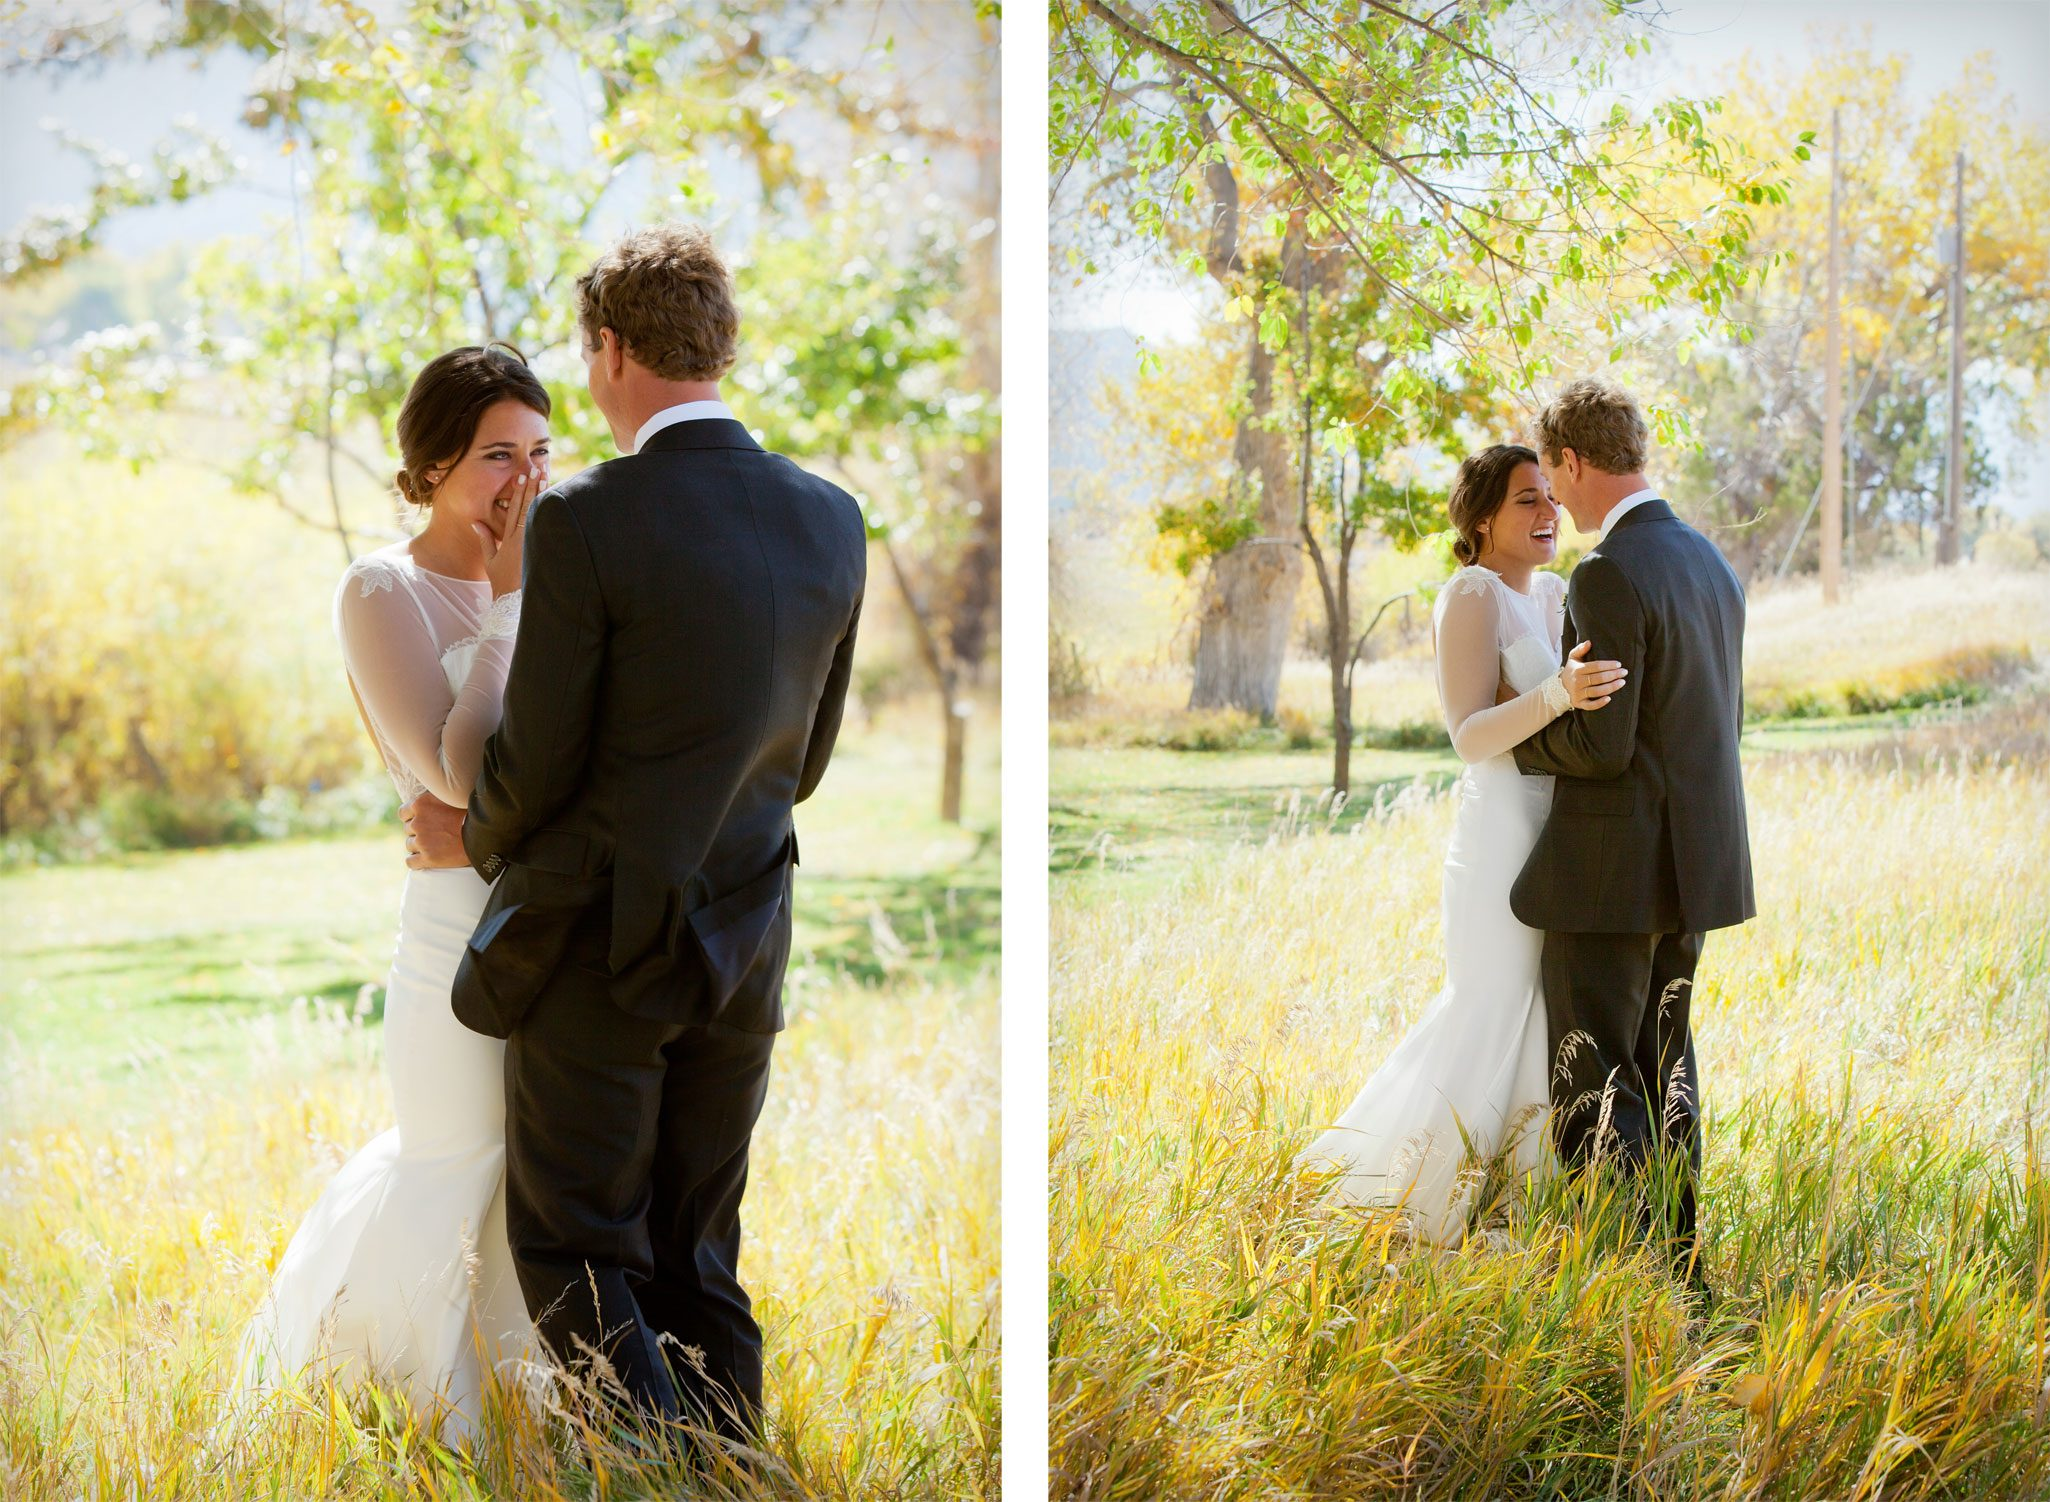 Bride & Groom | An Outdoor Autumn Wedding in Mancos, Colorado